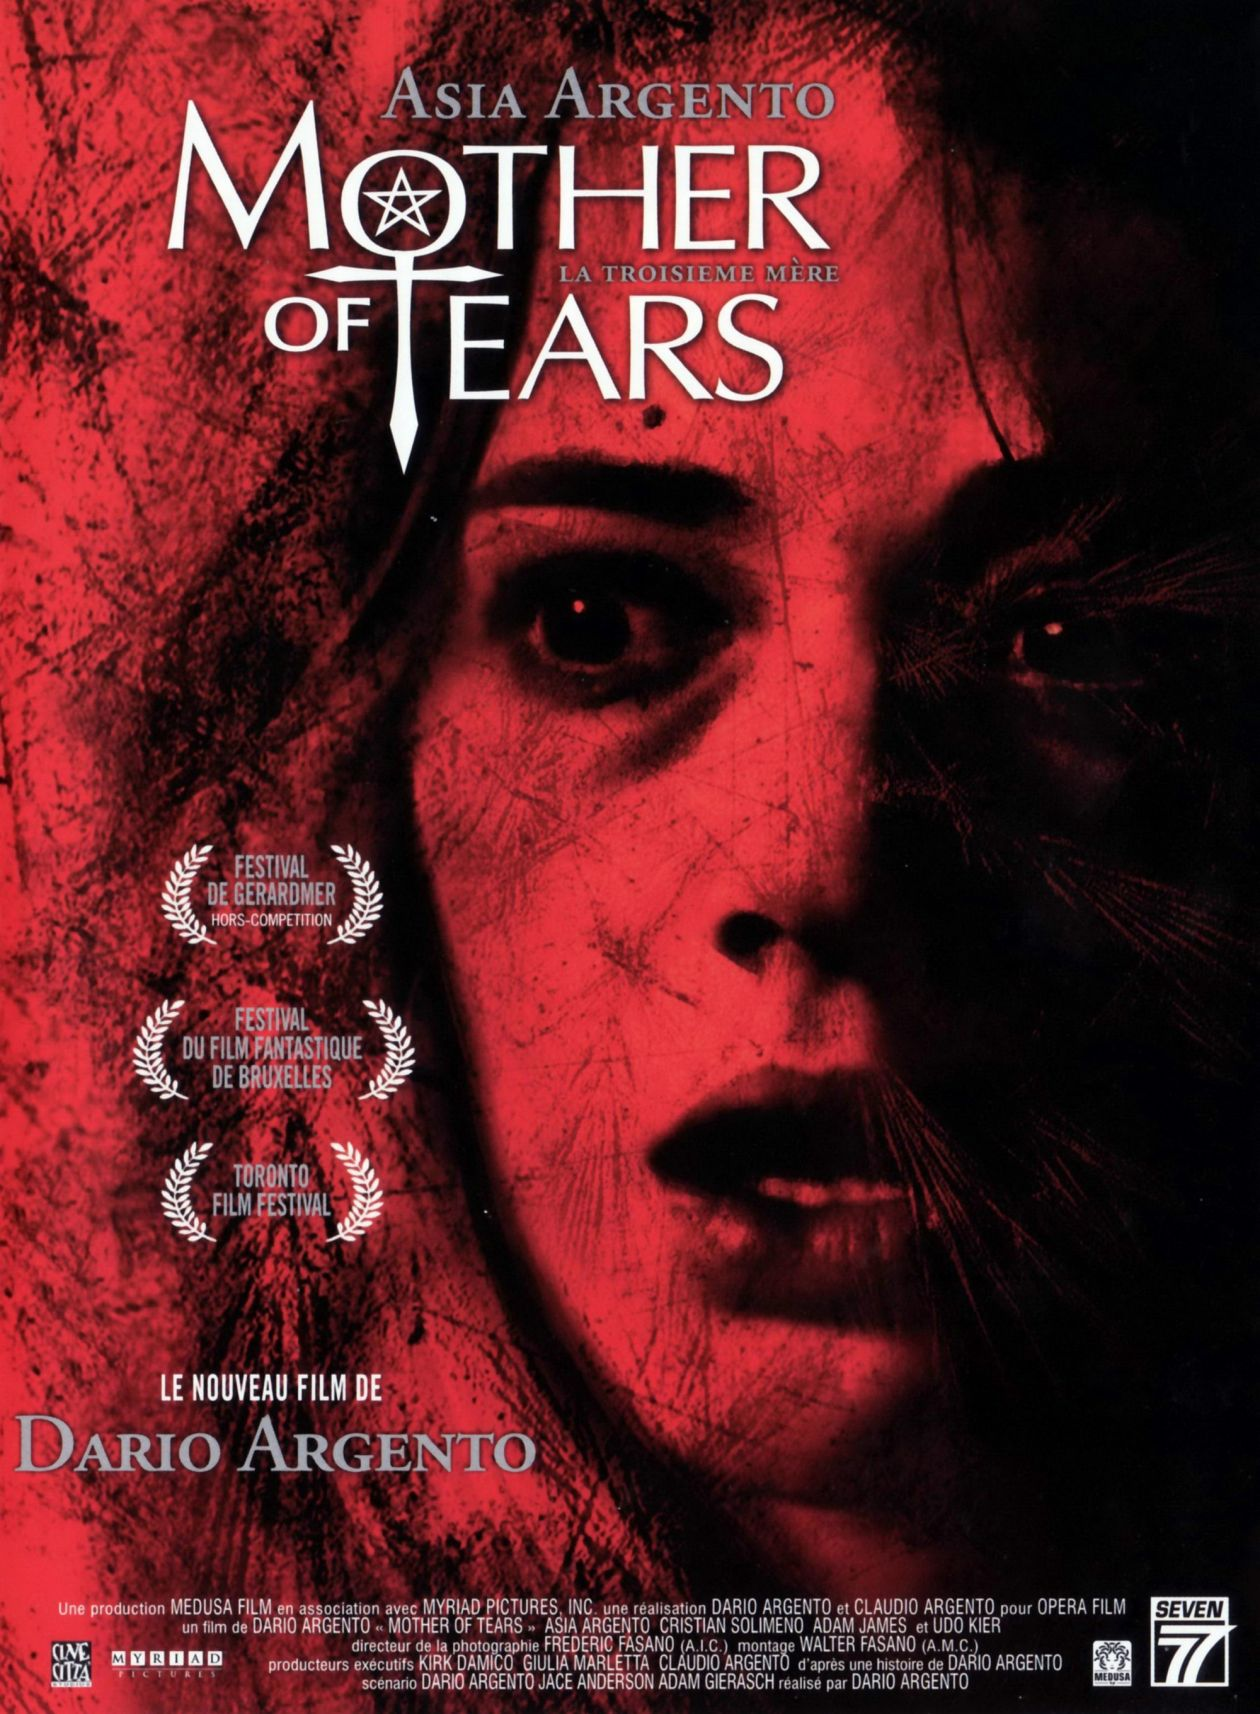 Asia Argento actress | Mother of Tears / Dario Argento 2007 Movie Poster Affiche film